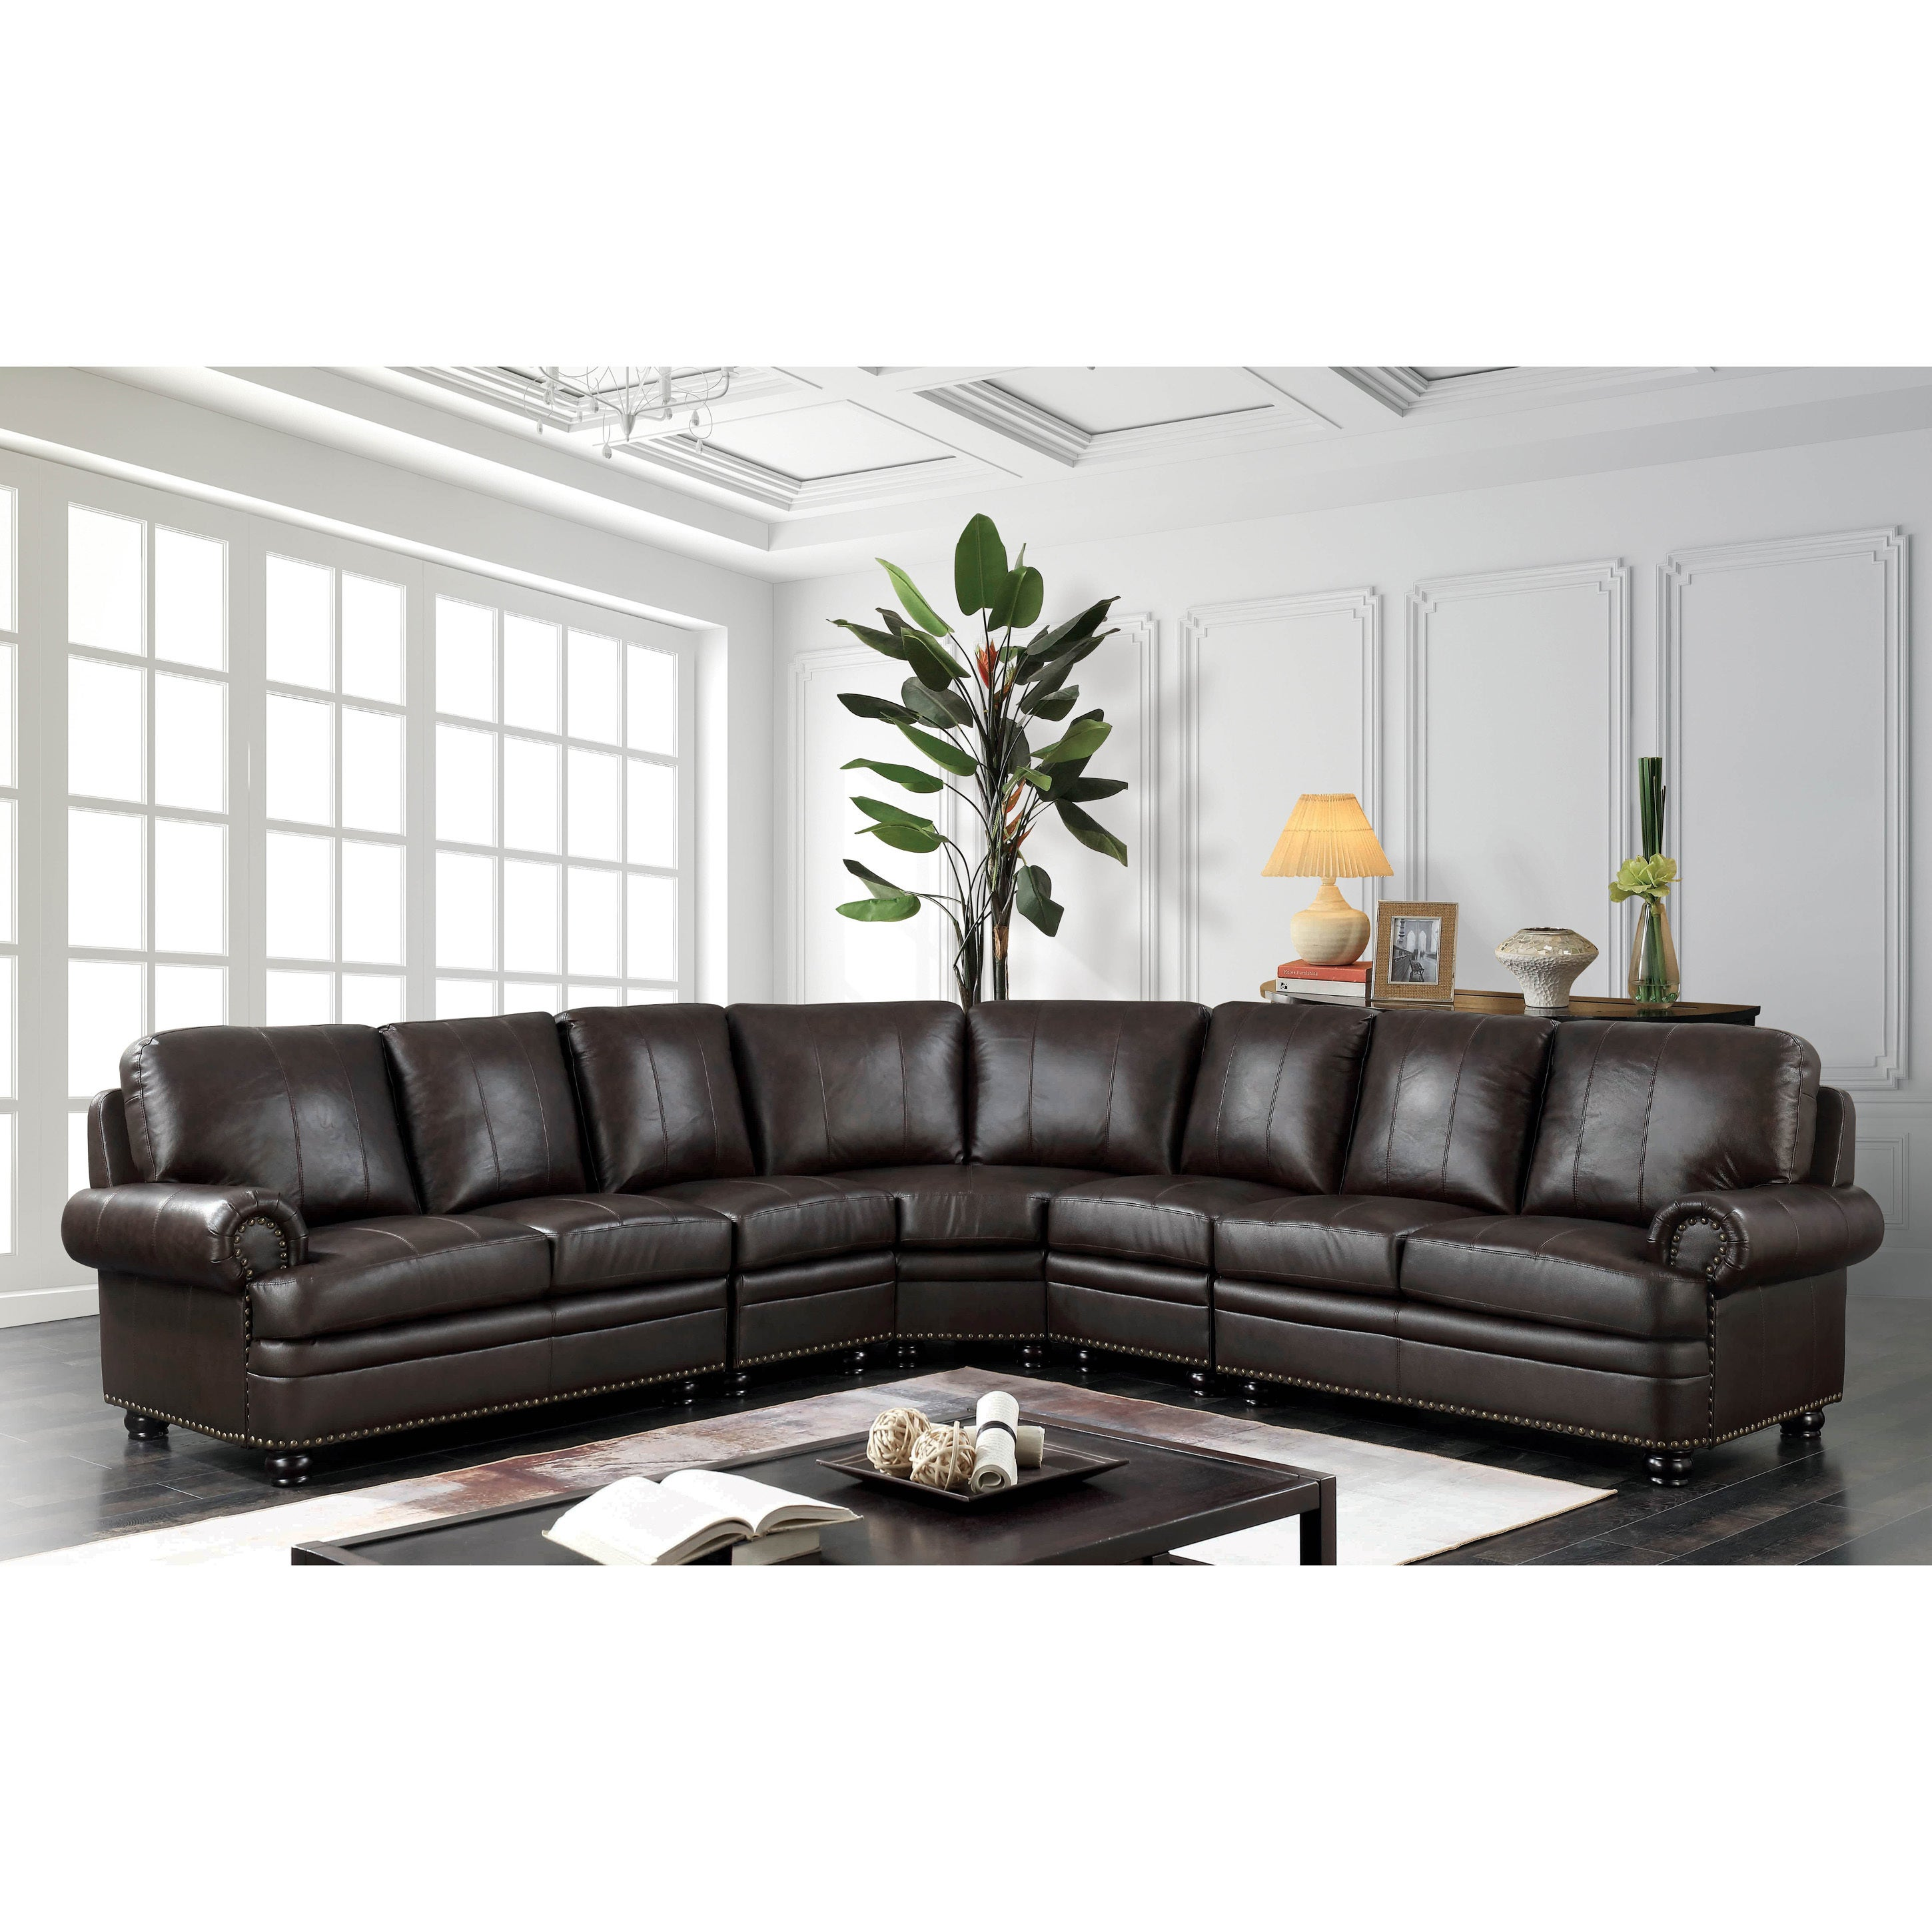 Furniture of America Hodges Brown Leather 8-seater Sectional Sofa